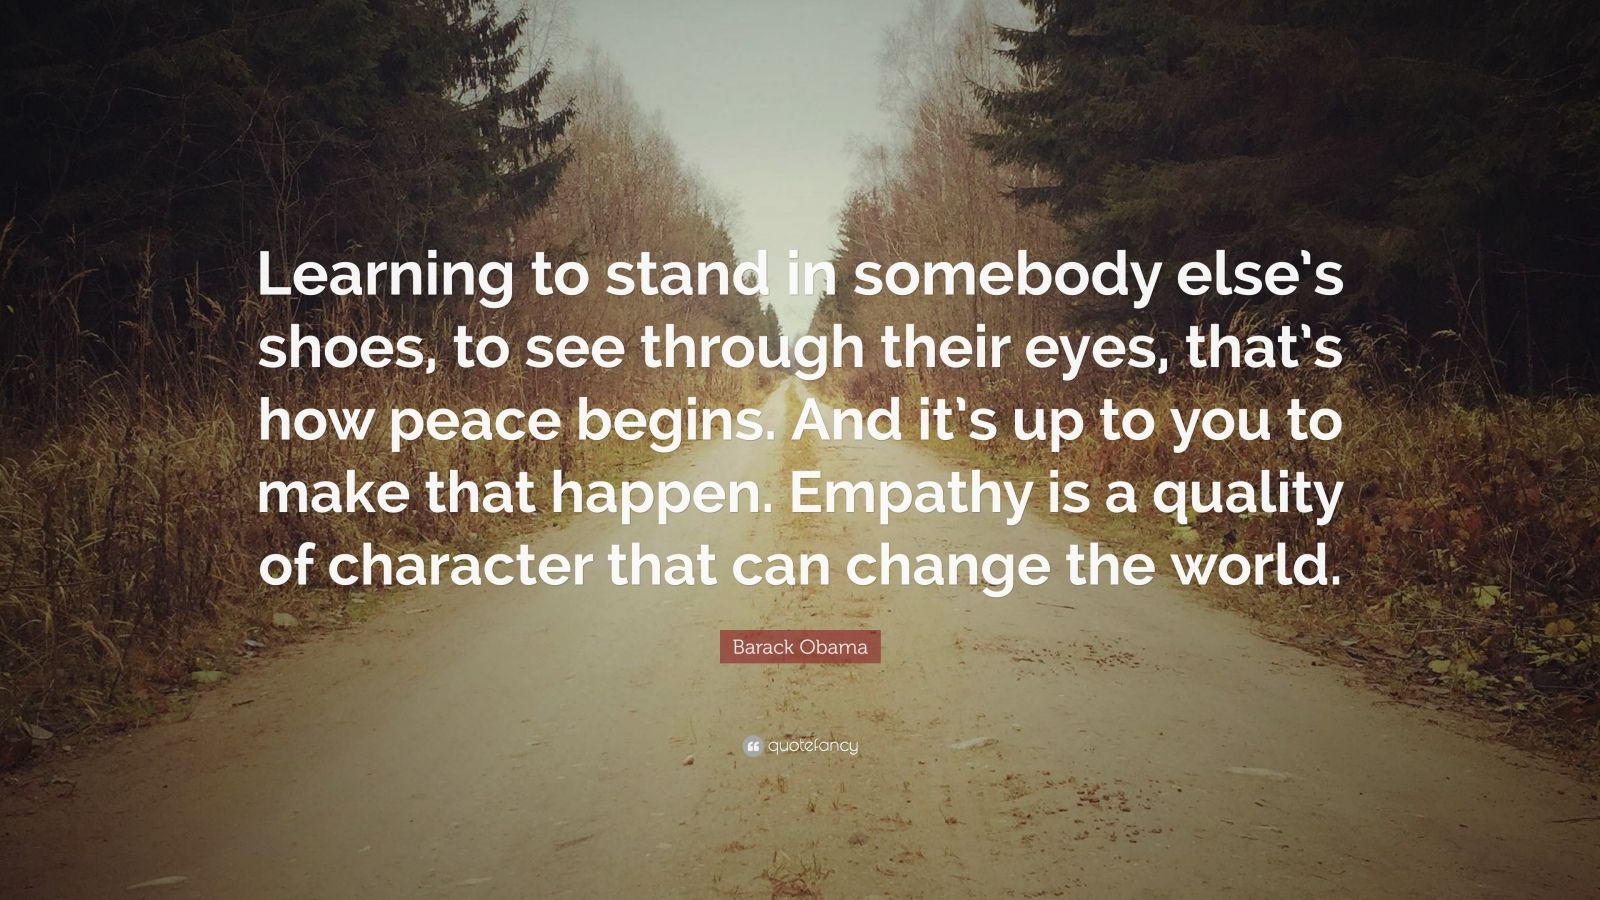 """Barack Obama Quote: """"Learning to stand in somebody else's shoes, to see through their eyes, that's how peace begins. And it's up to you to make that happen. Empathy is a quality of character that can change the world."""""""